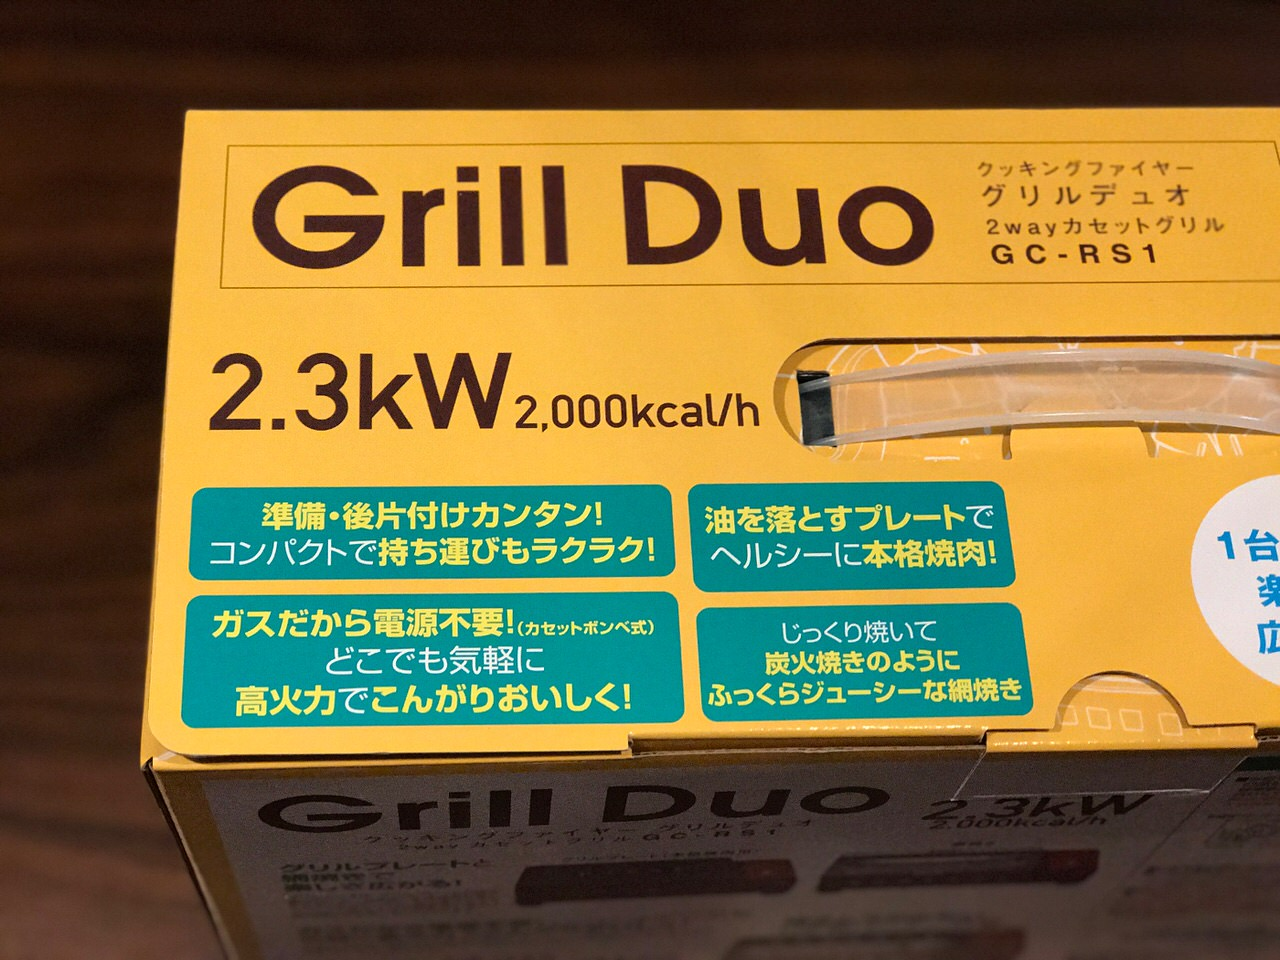 Grill duo 5120